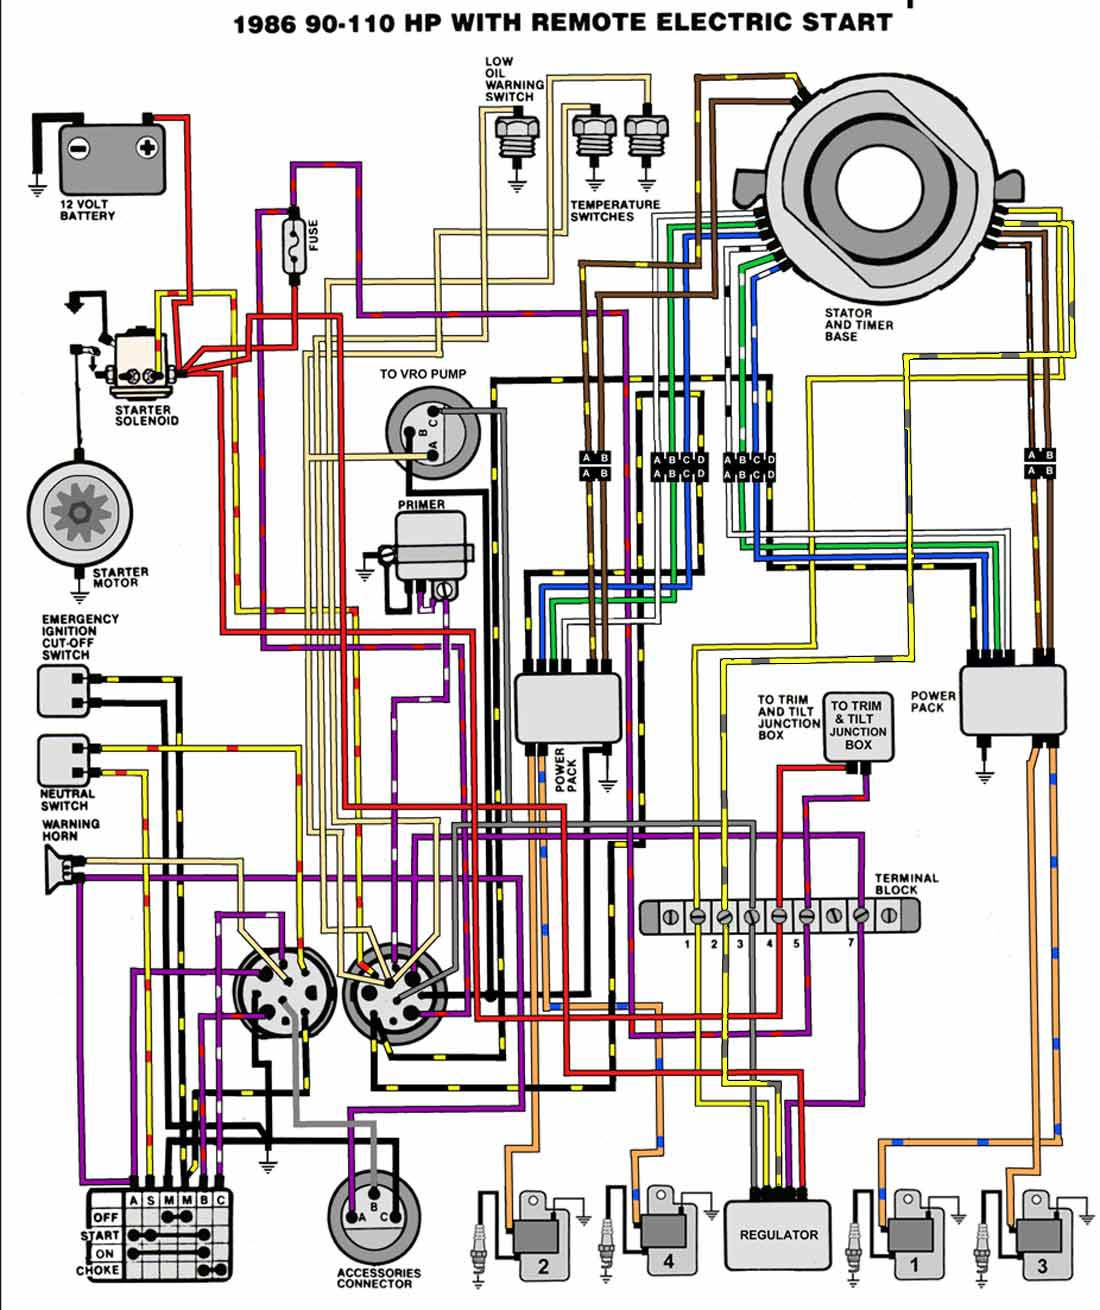 1986_90_115?resize=665%2C792 yamaha 90 outboard wiring diagram readingrat net yamaha outboard wire diagram at suagrazia.org